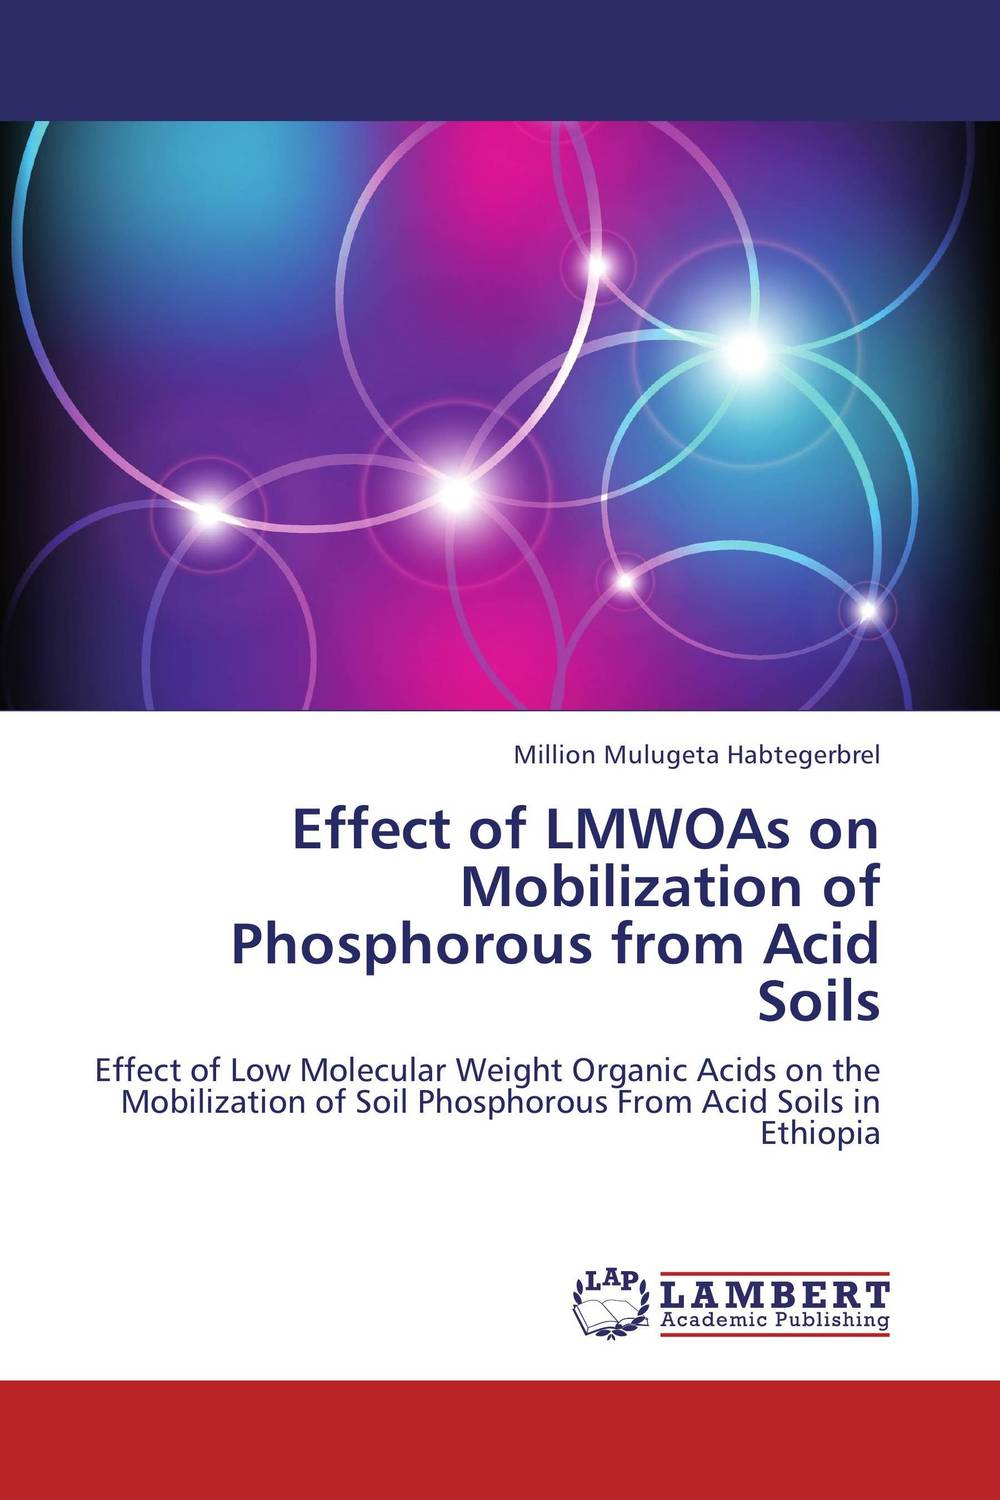 Effect of LMWOAs on Mobilization of Phosphorous from Acid Soils splat зубная щетка iney snow brush magic 1 шт